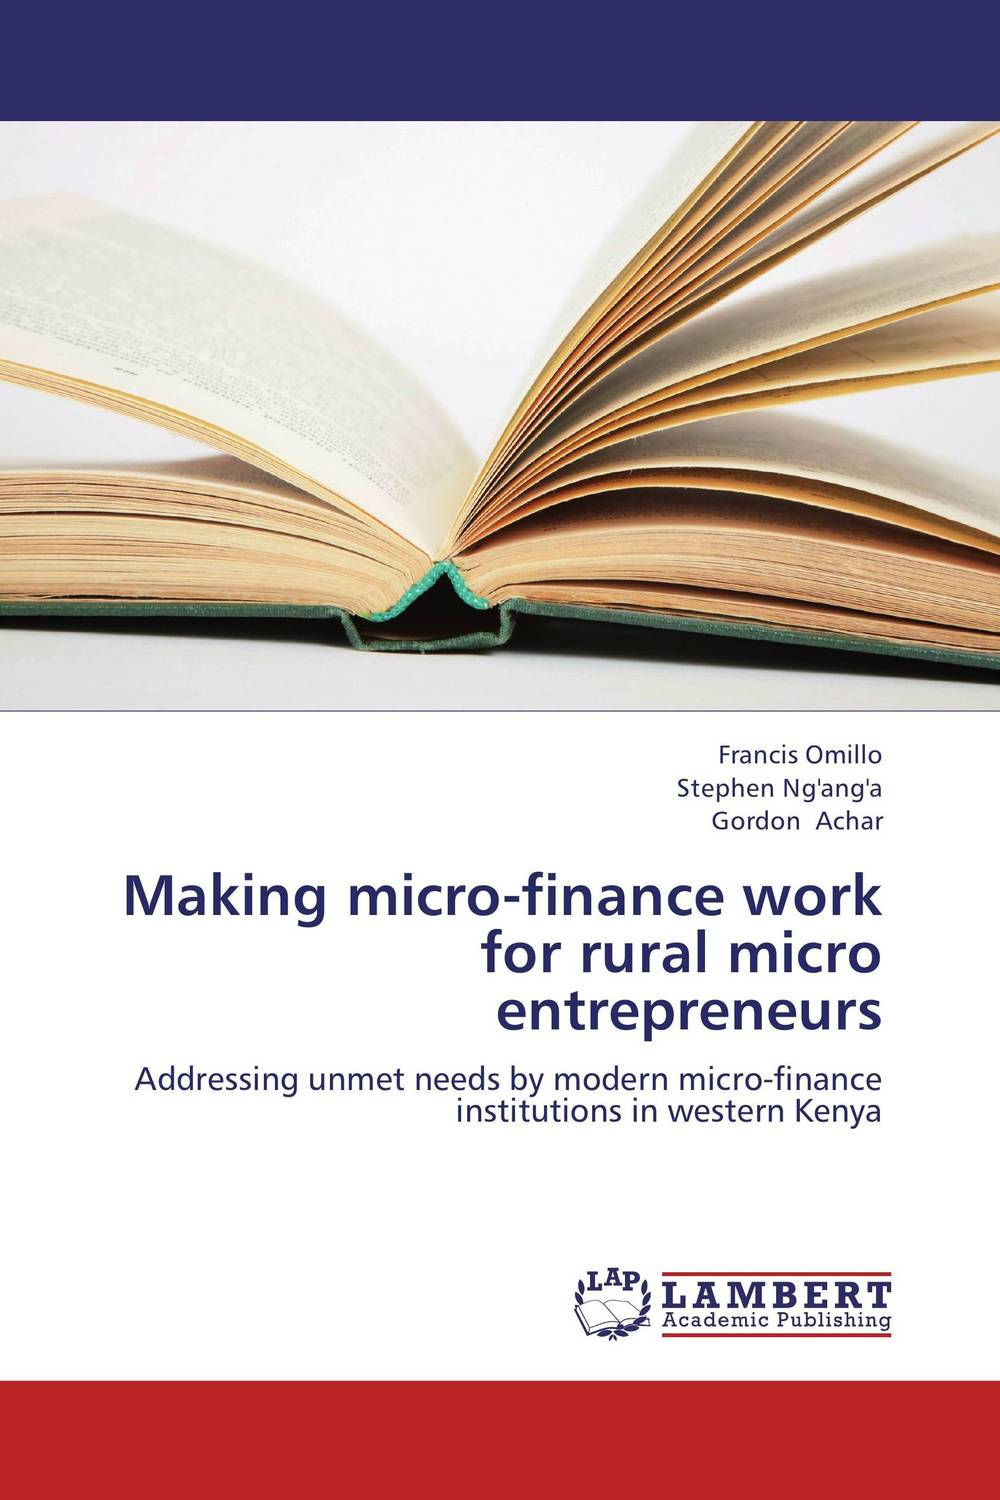 Making micro-finance work for rural micro entrepreneurs jaynal ud din ahmed and mohd abdul rashid institutional finance for micro and small entreprises in india